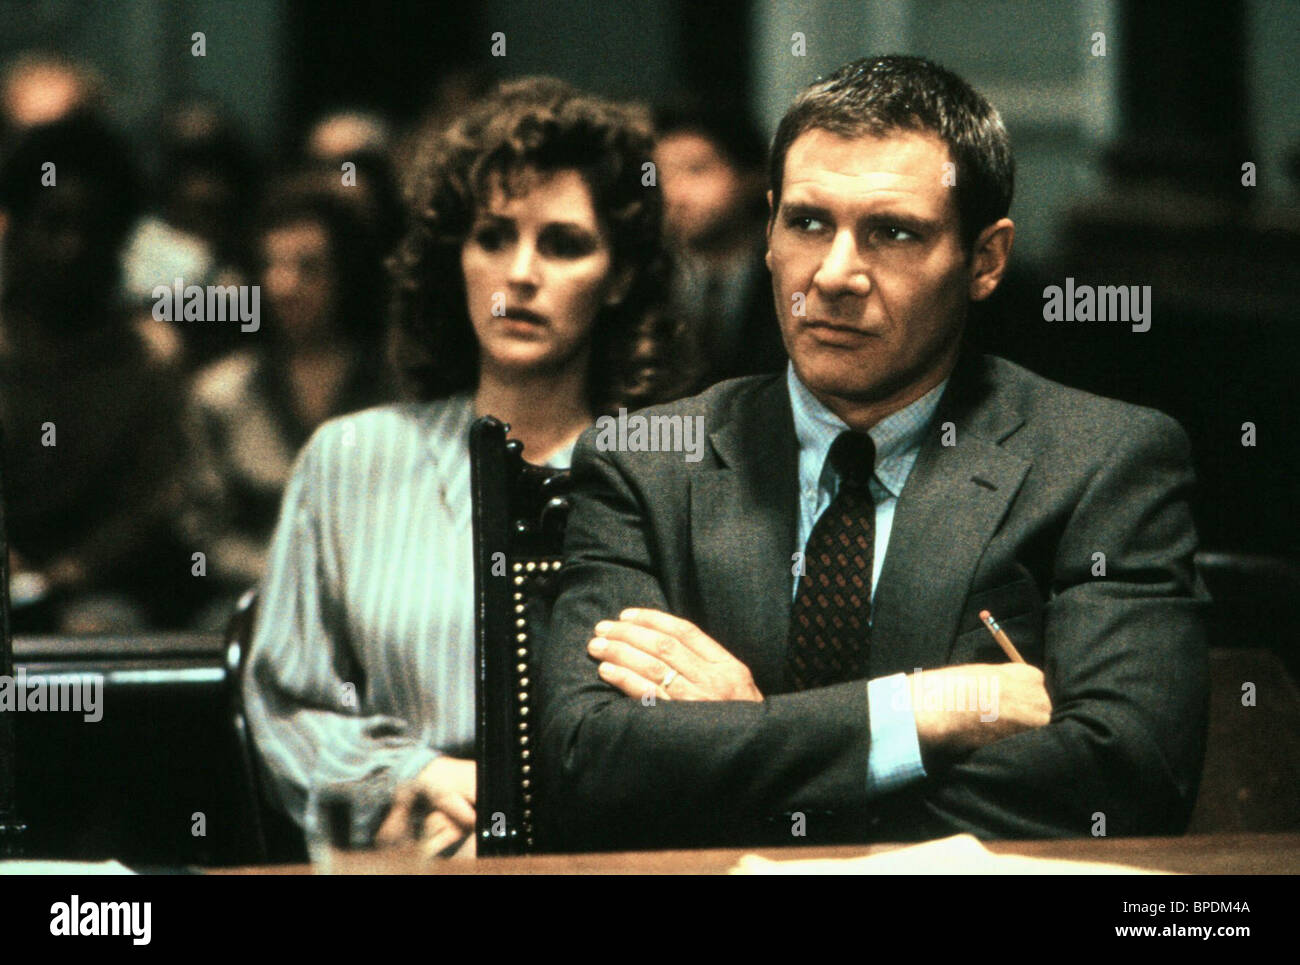 Delicieux BONNIE BEDELIA U0026 HARRISON FORD PRESUMED INNOCENT (1990